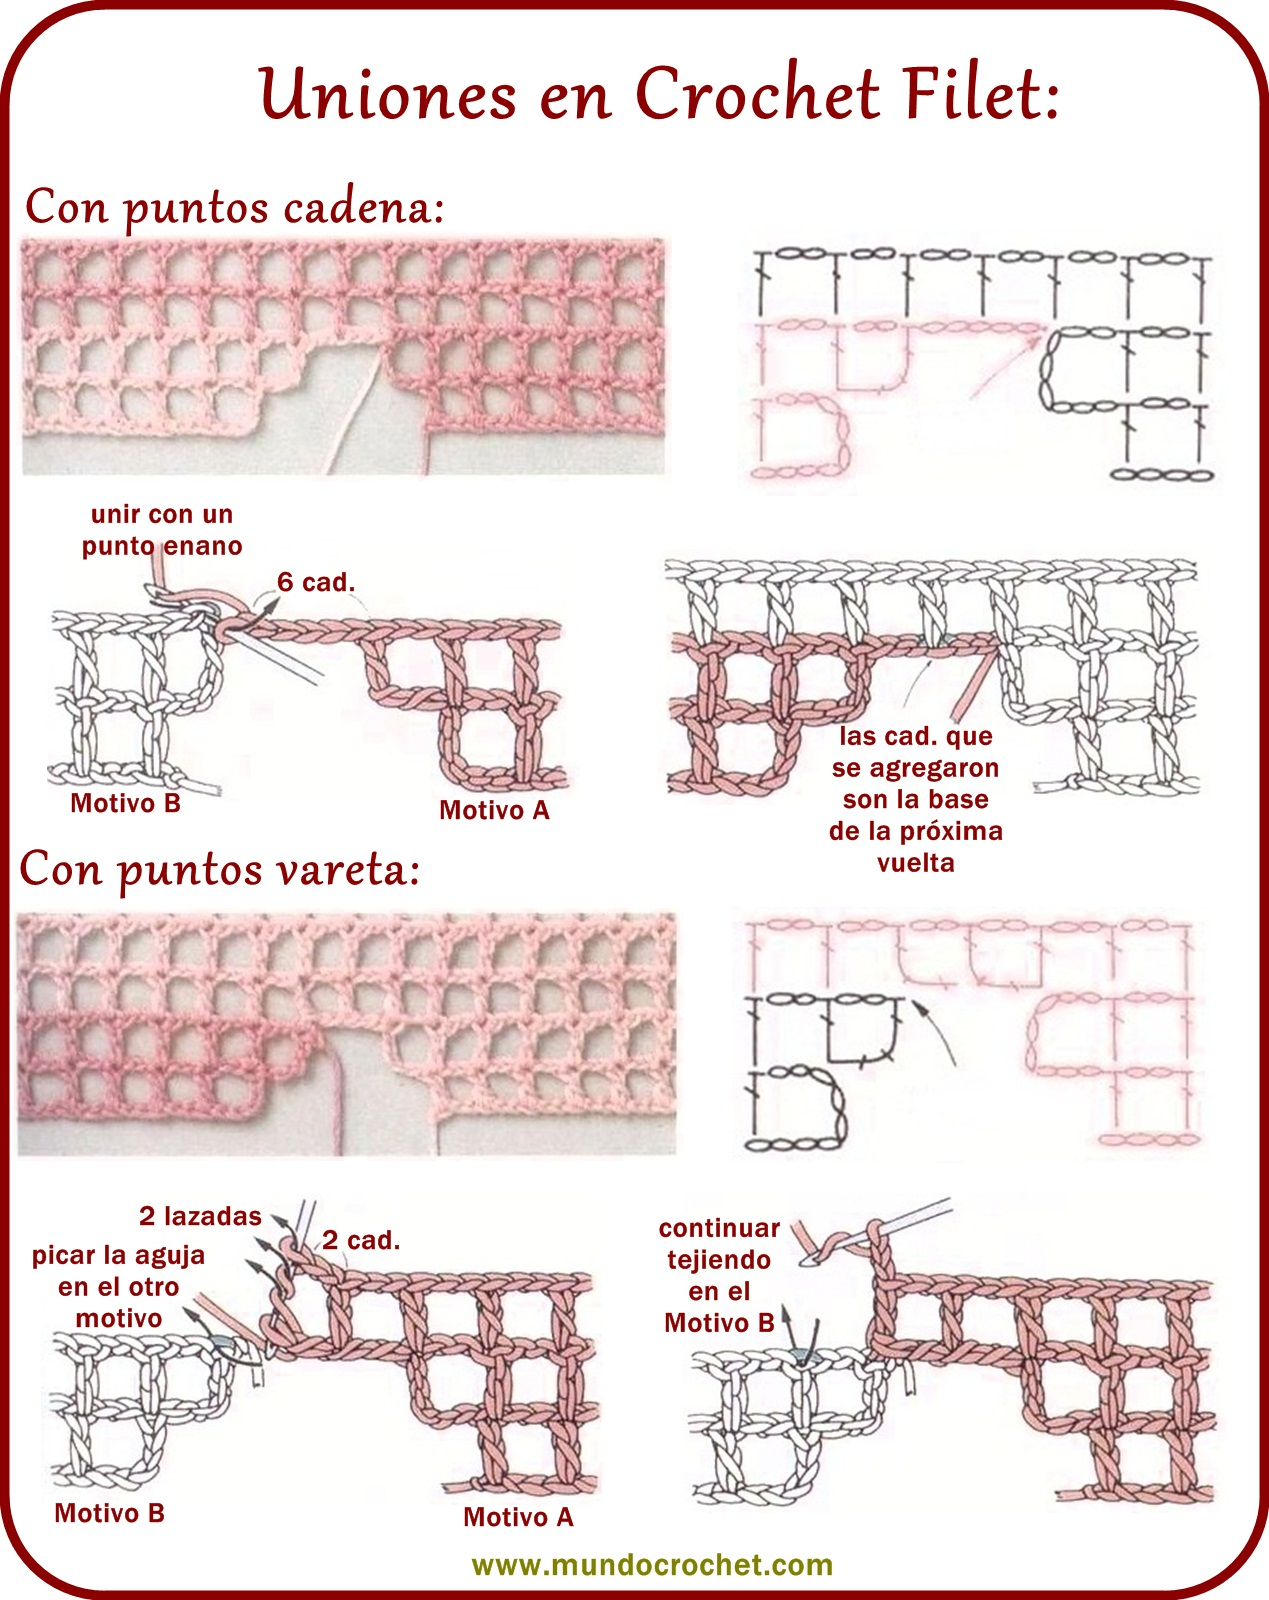 Cómo tejer Crochet Filet